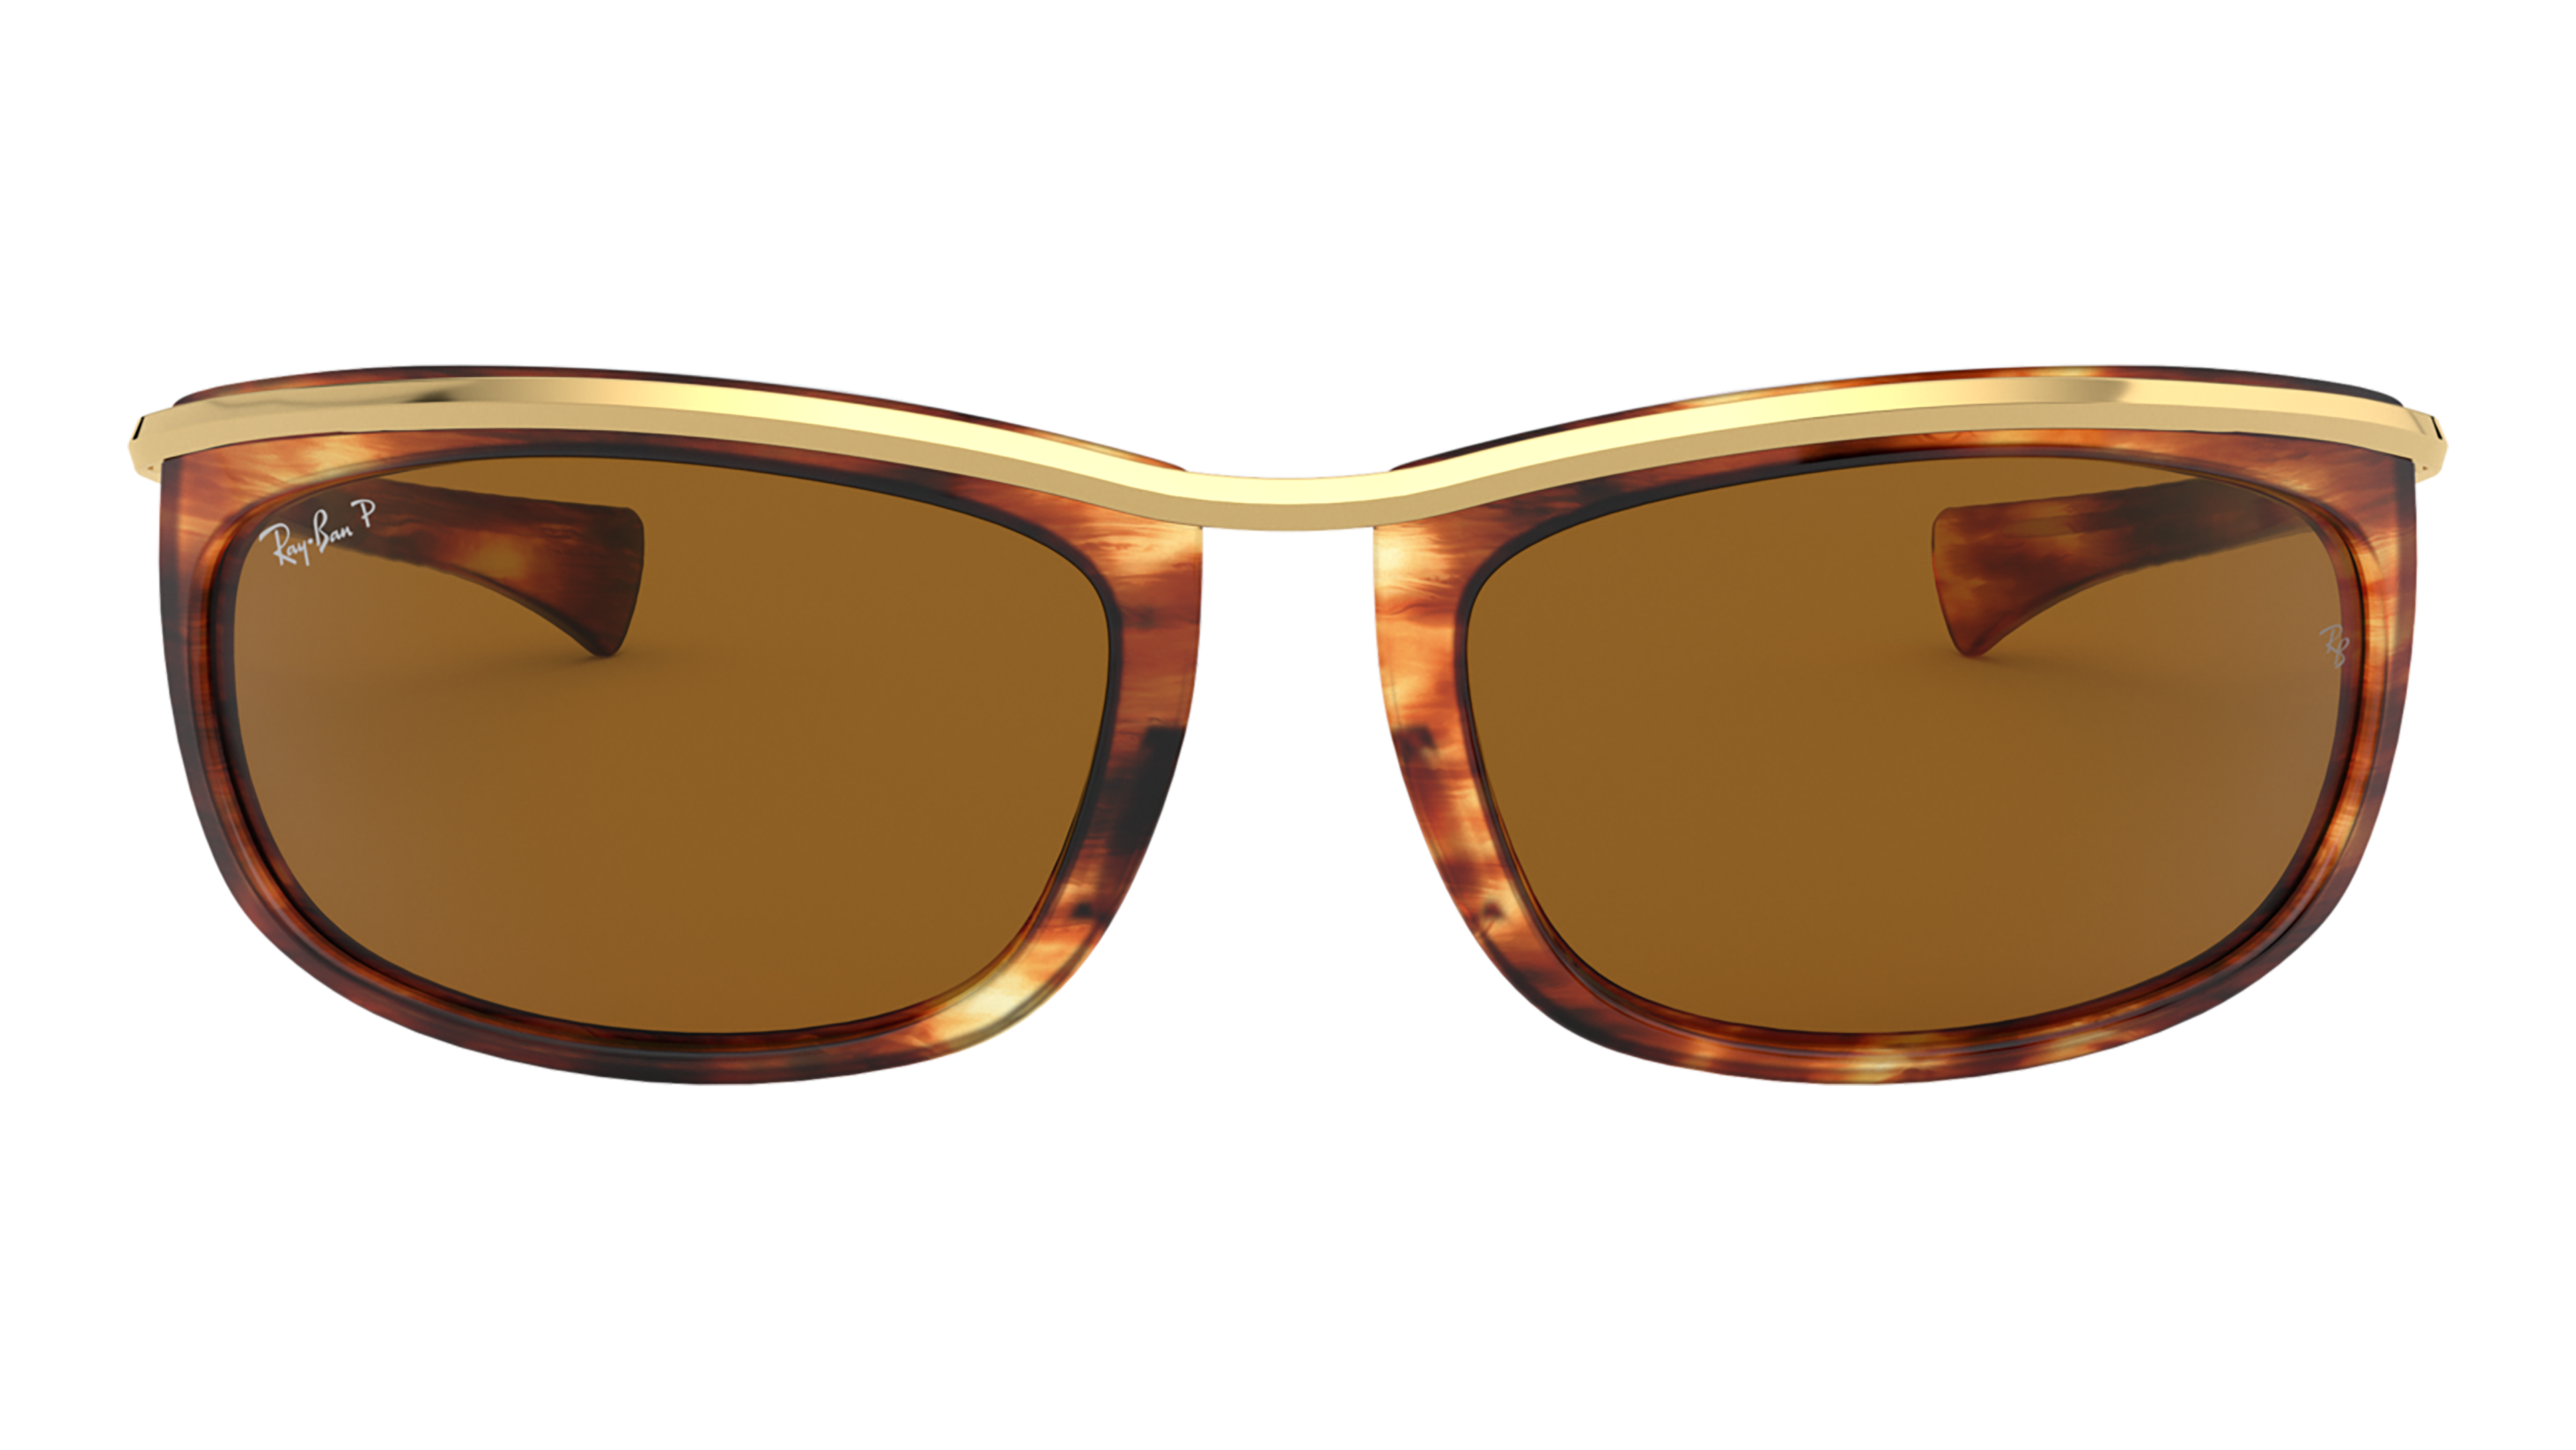 Front Ray-Ban Ray-Ban 0RB2319 954/57 62/19 Bruin, Goud/Bruin